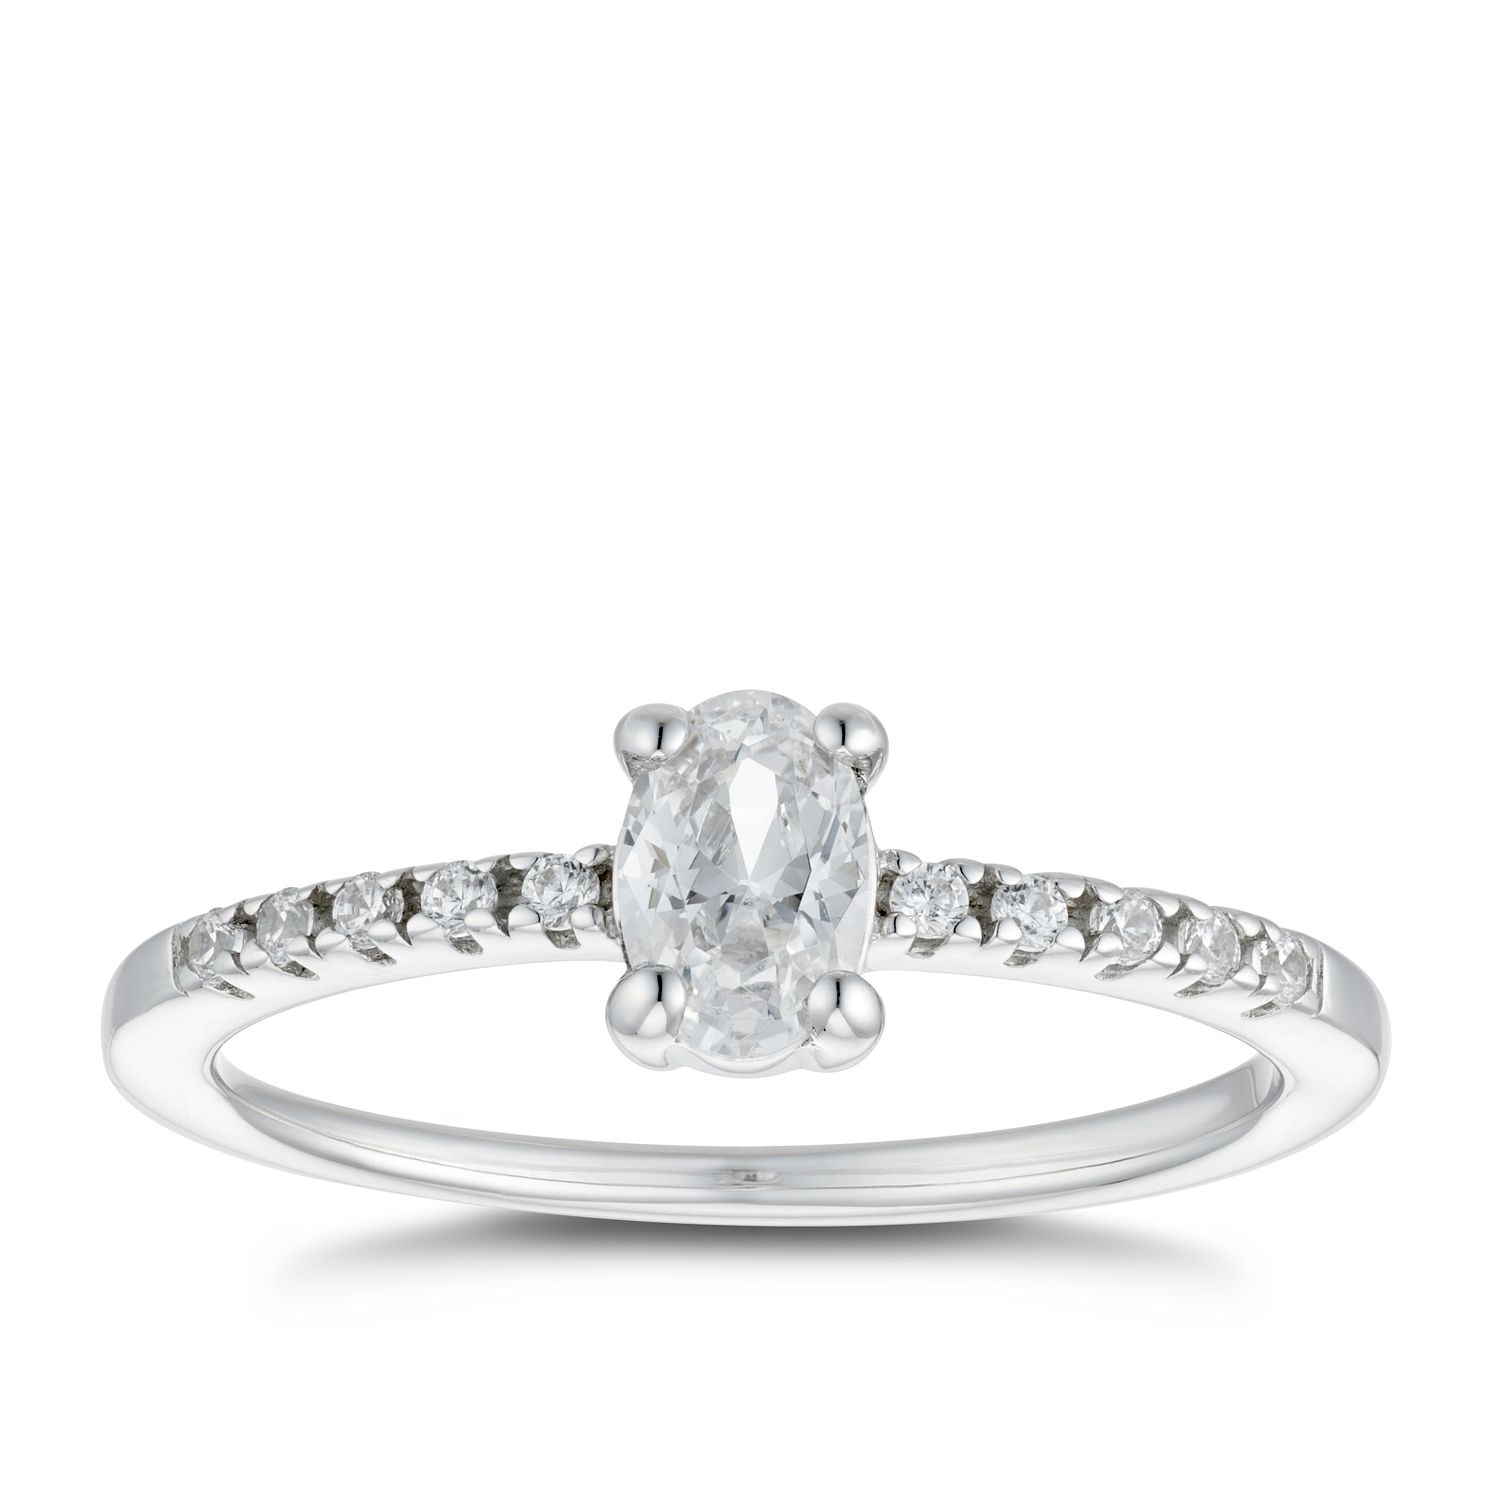 Silver Cubic Zirconia Oval Ring - Size P - Product number 4842219